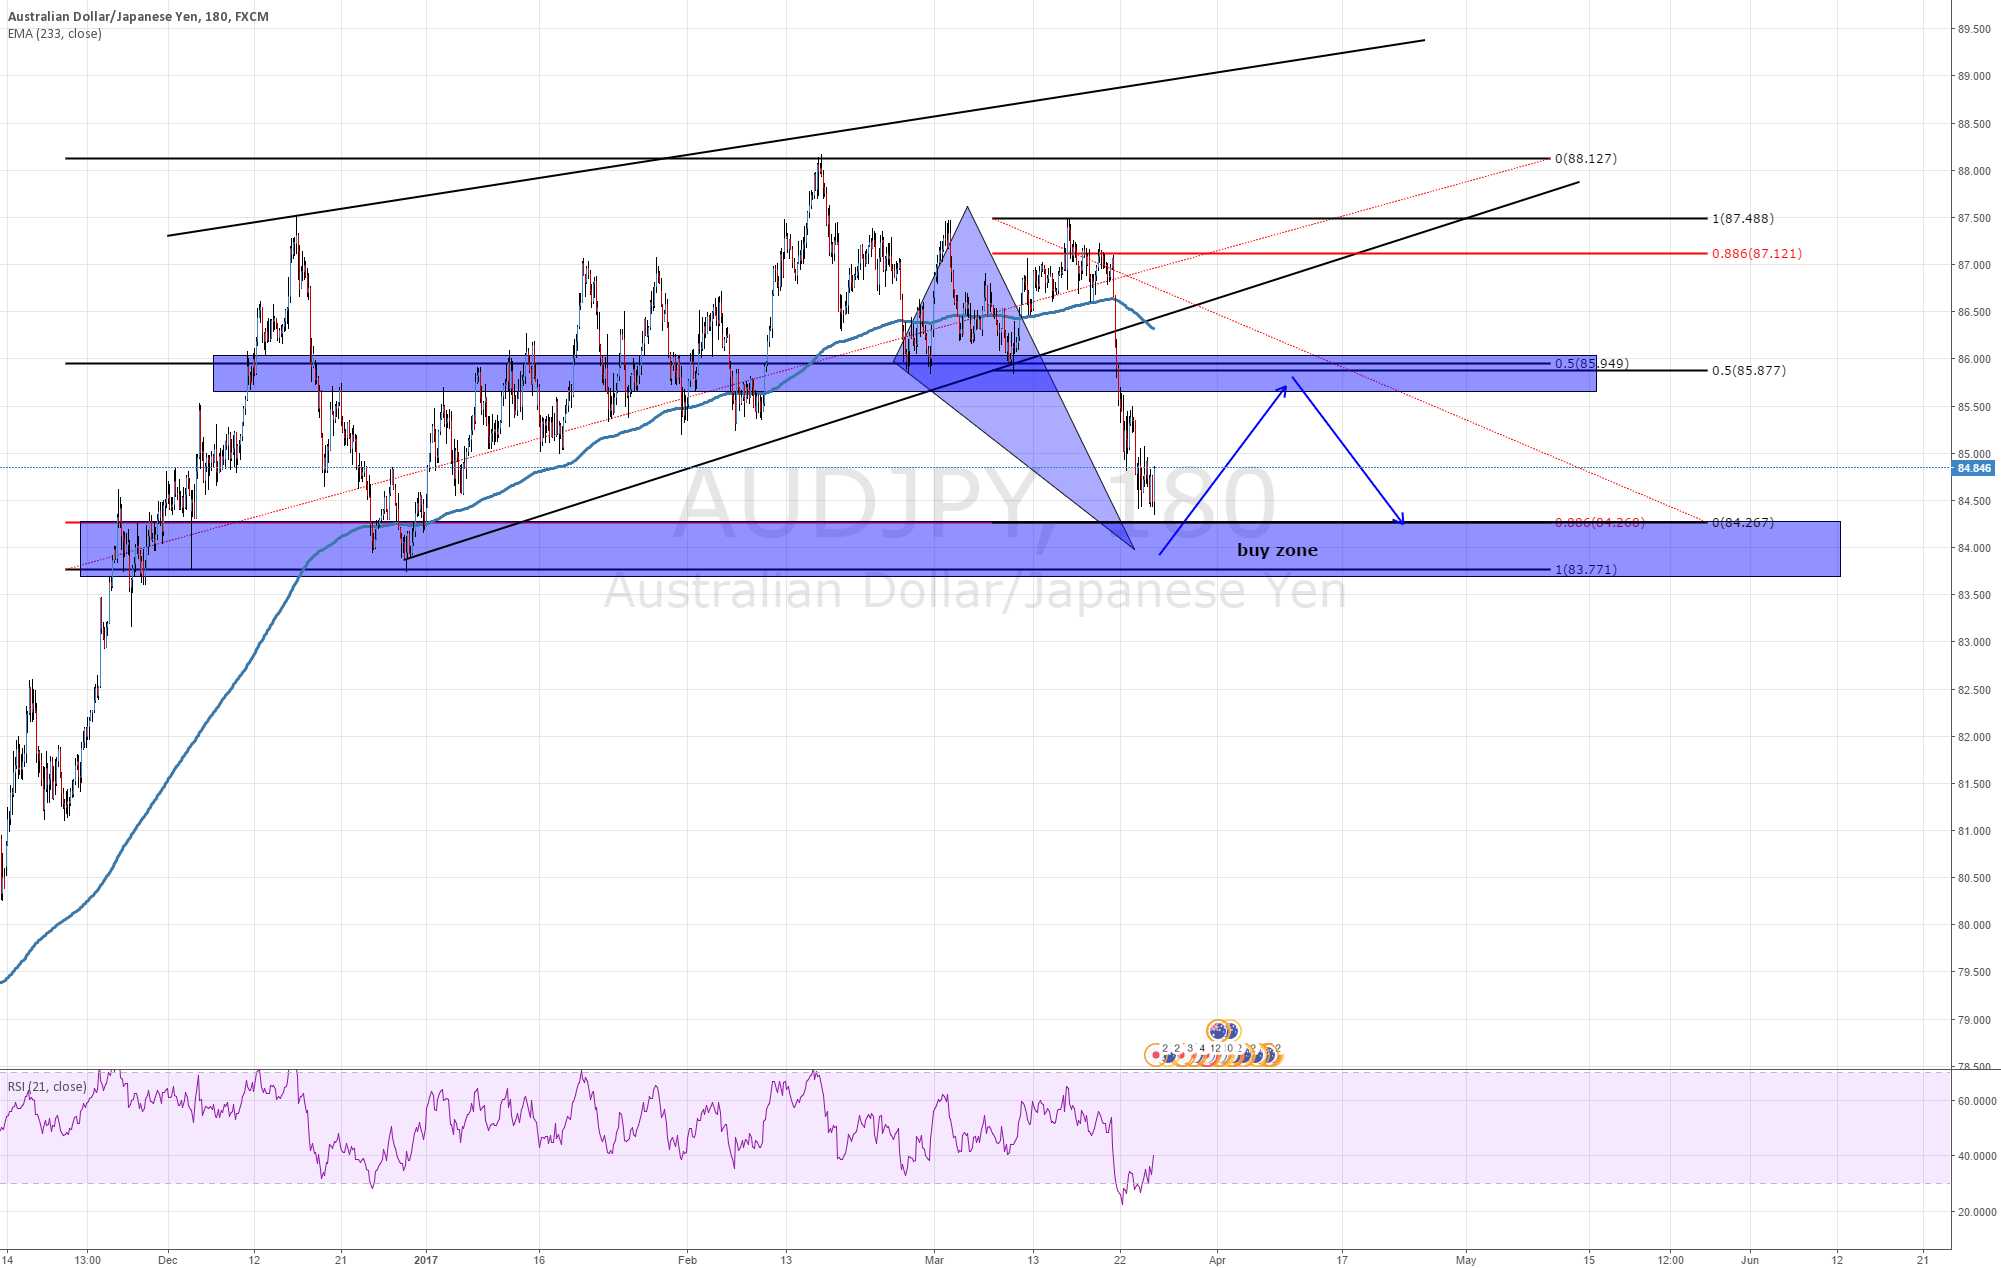 AUDJPY Buy Zone idea